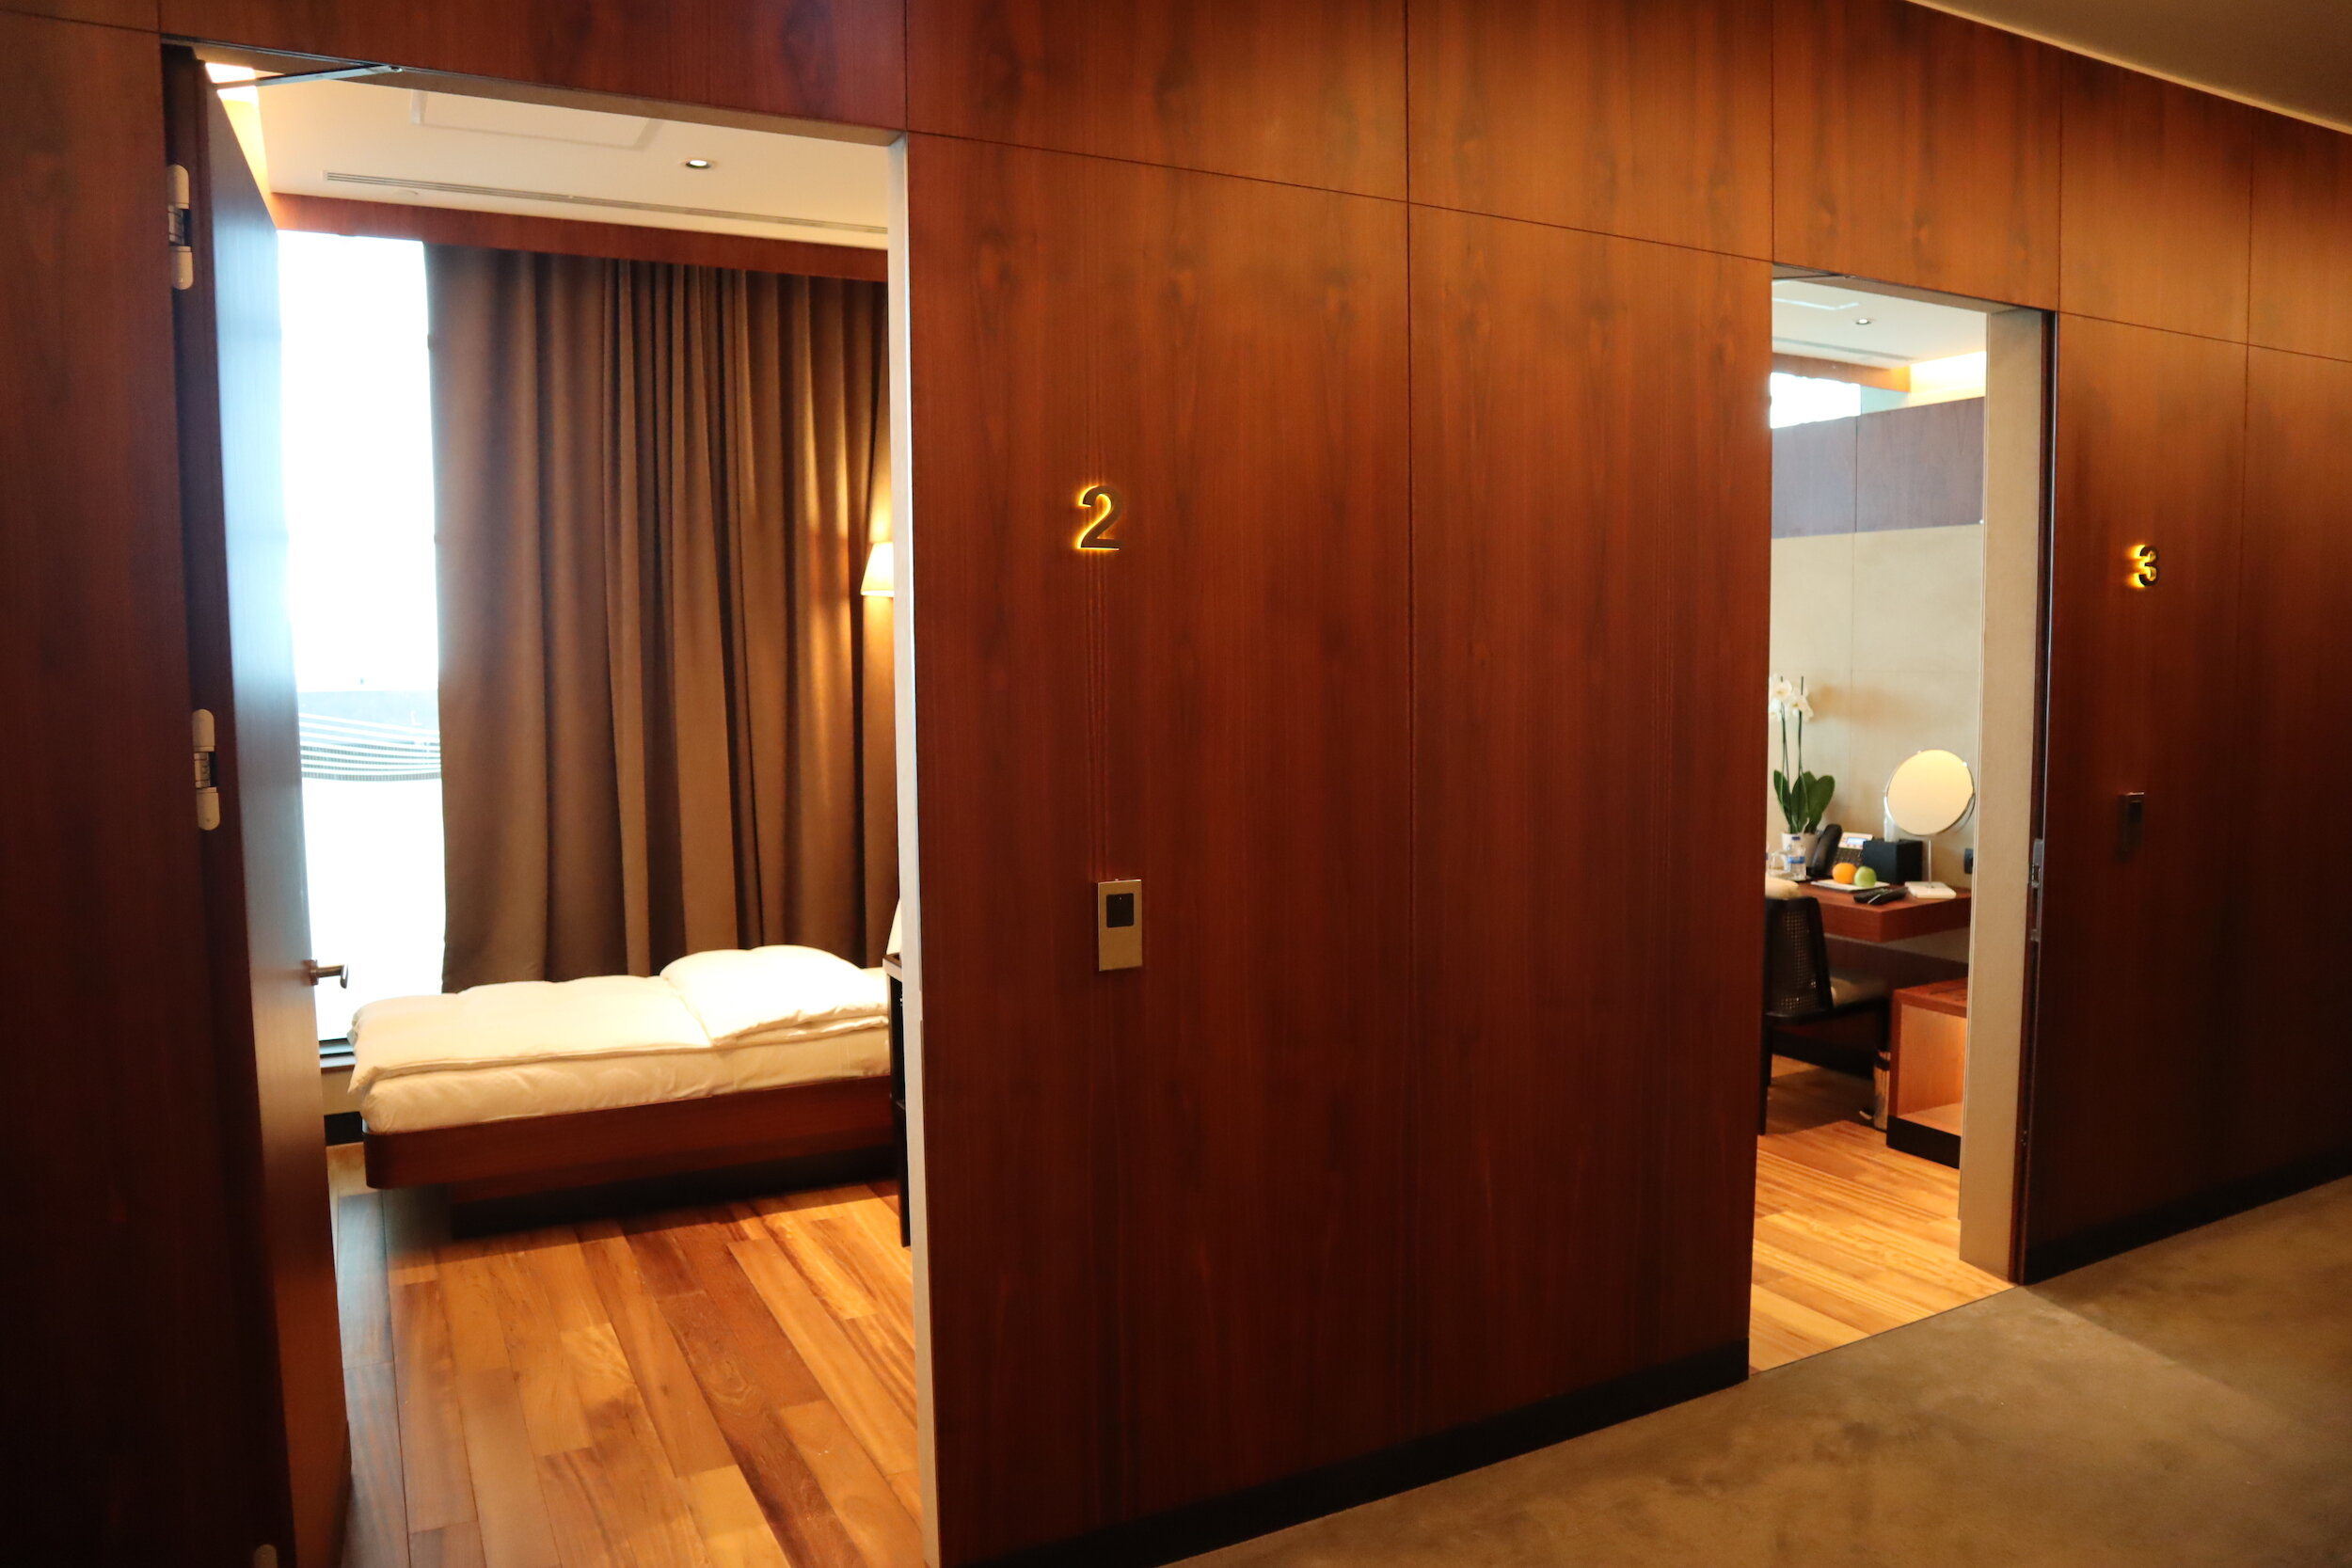 Turkish Airlines Business Lounge Istanbul – Private sleeping rooms